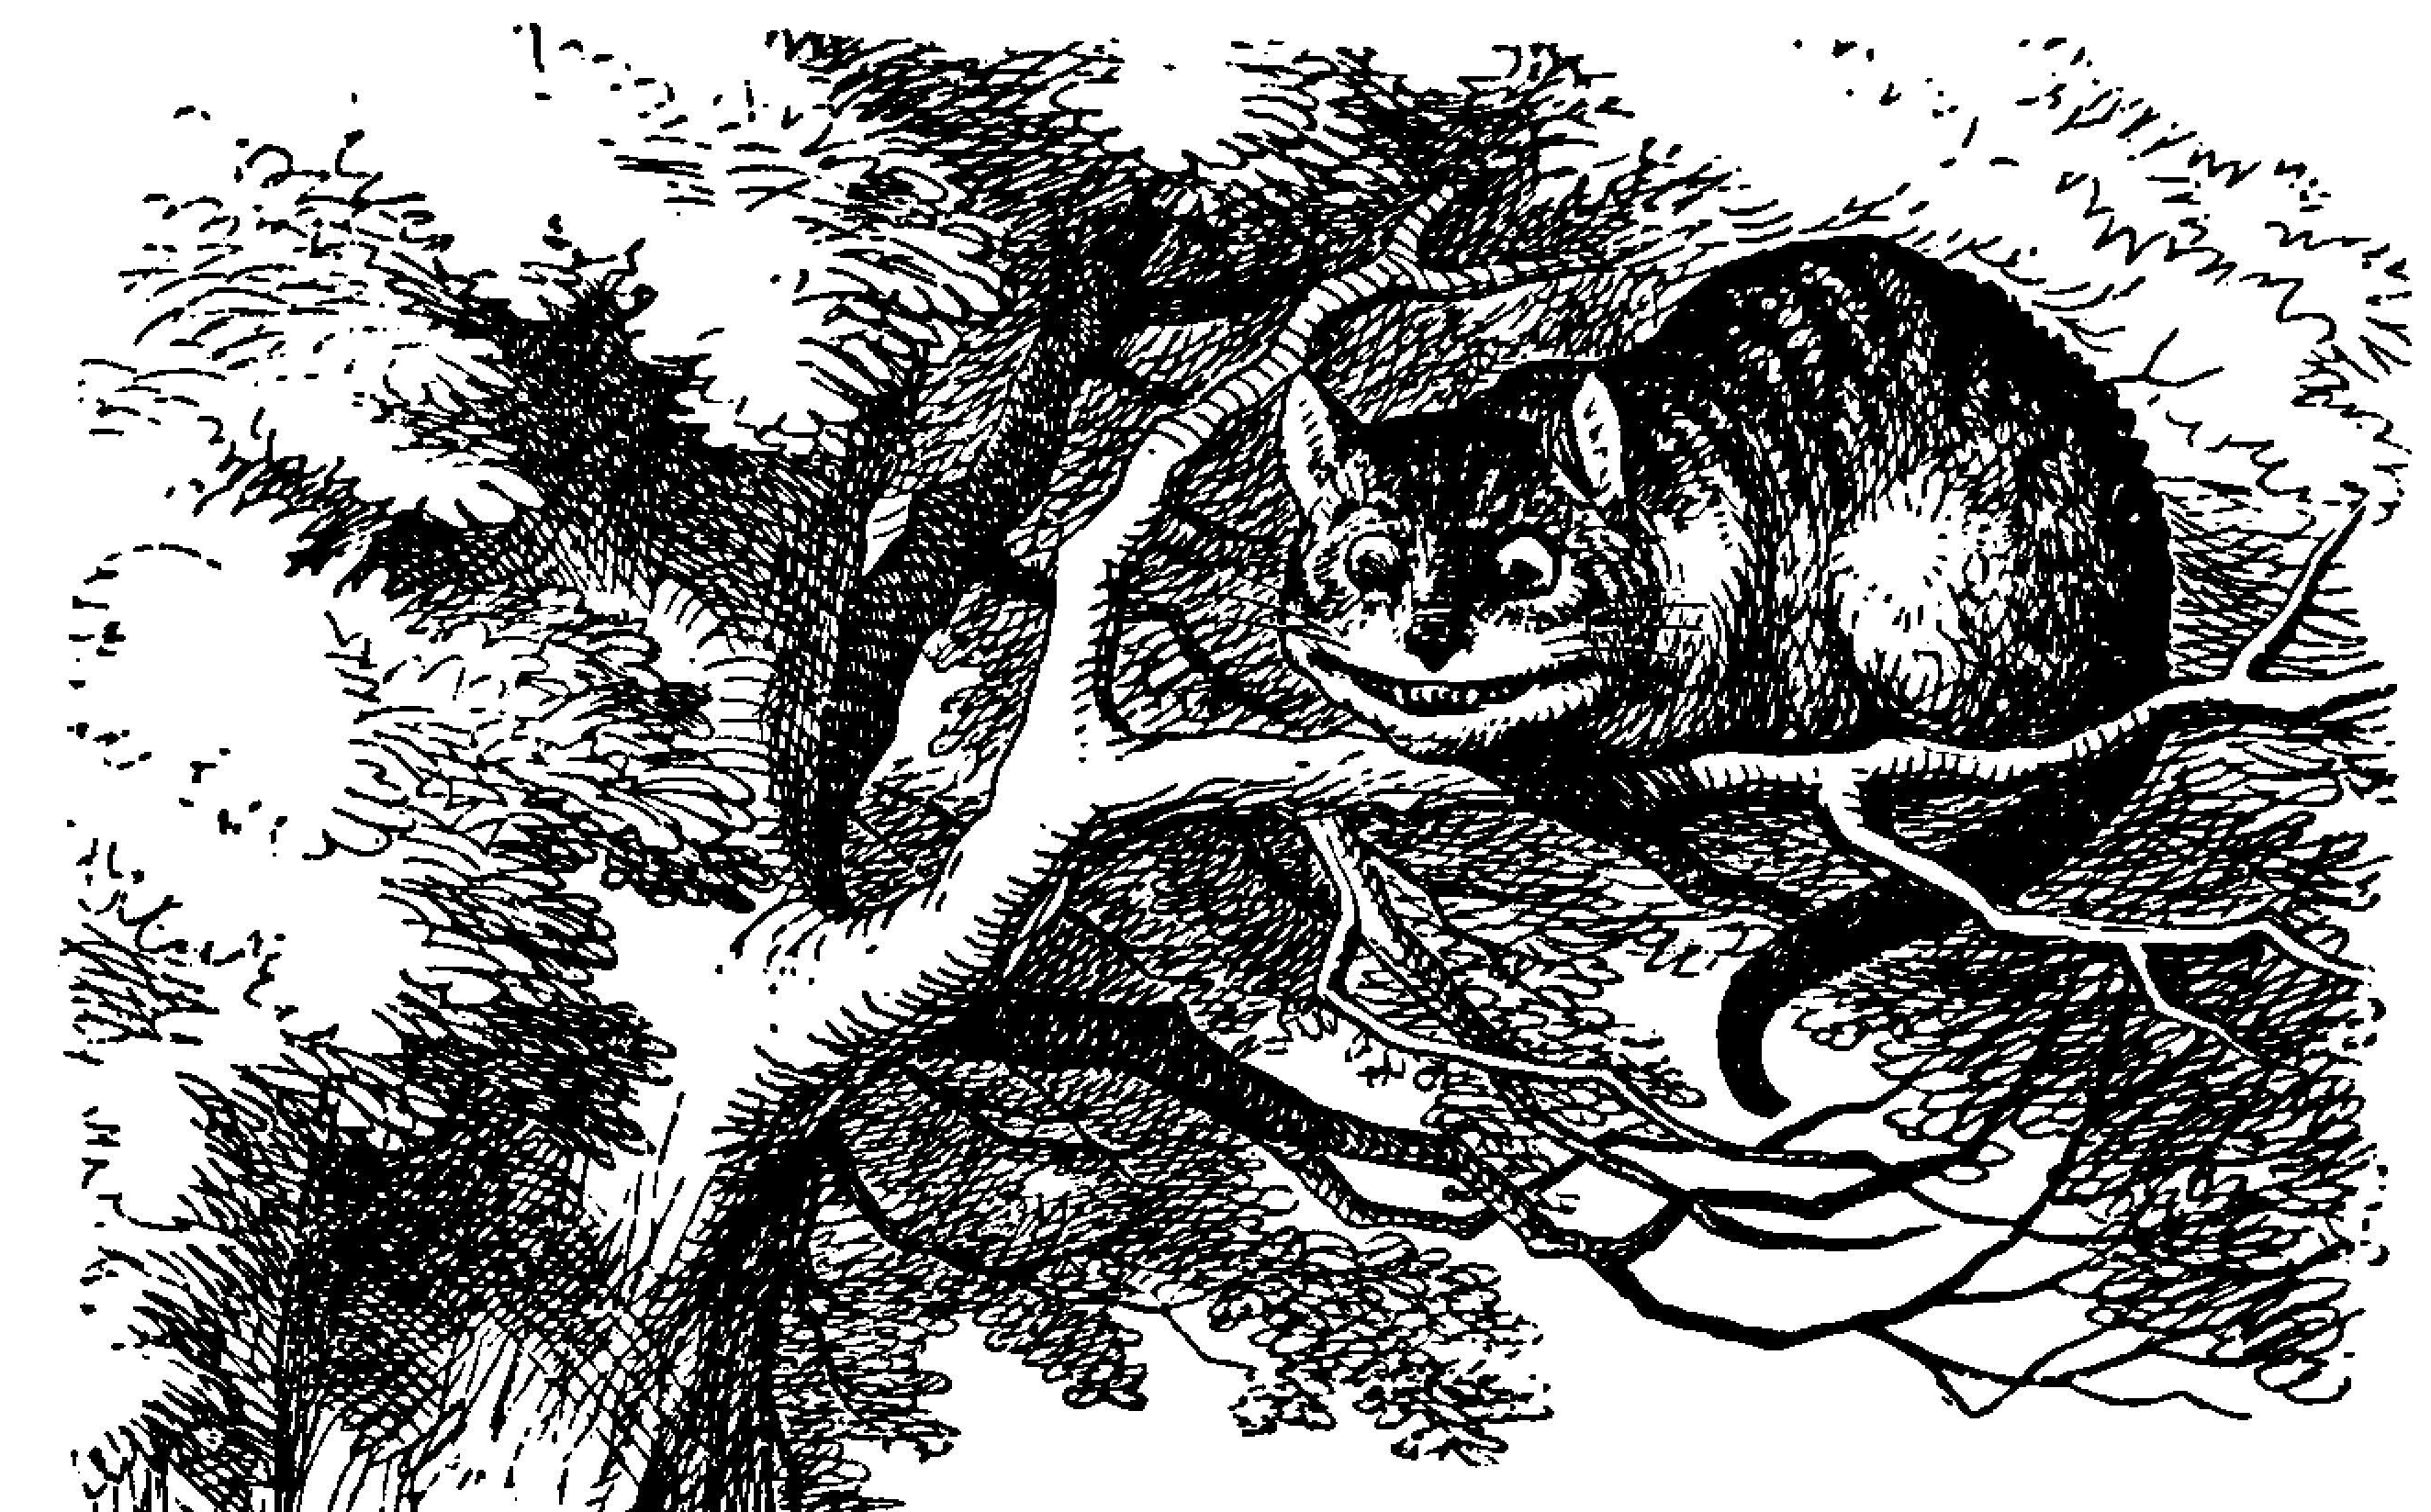 Tenniel's illustration of the Cheshire Cat